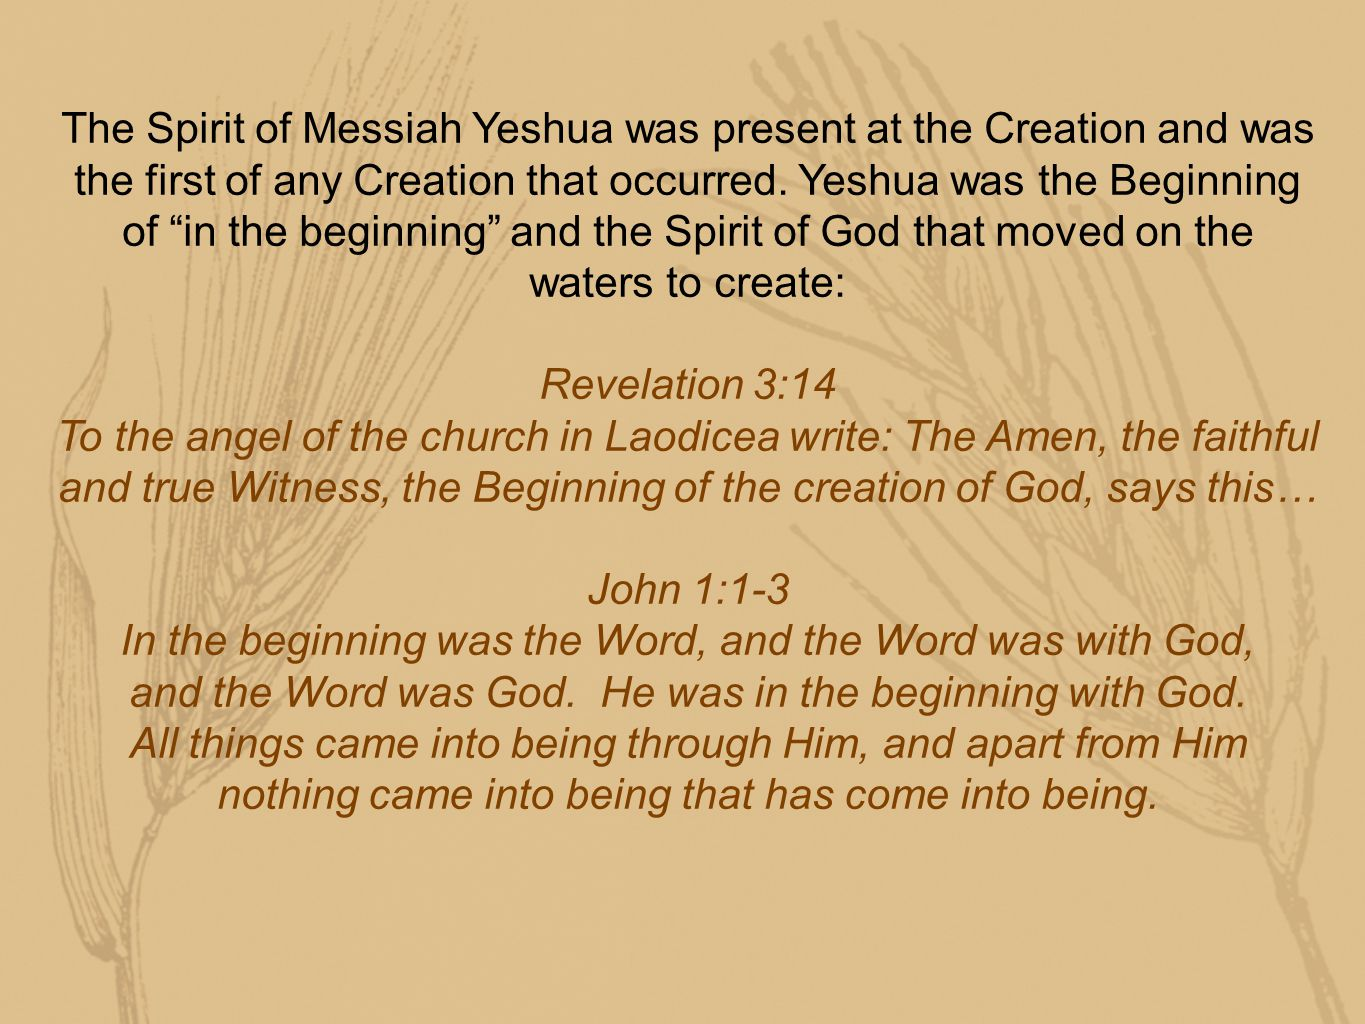 The Spirit of Messiah Yeshua was present at the Creation and was the first of any Creation that occurred.